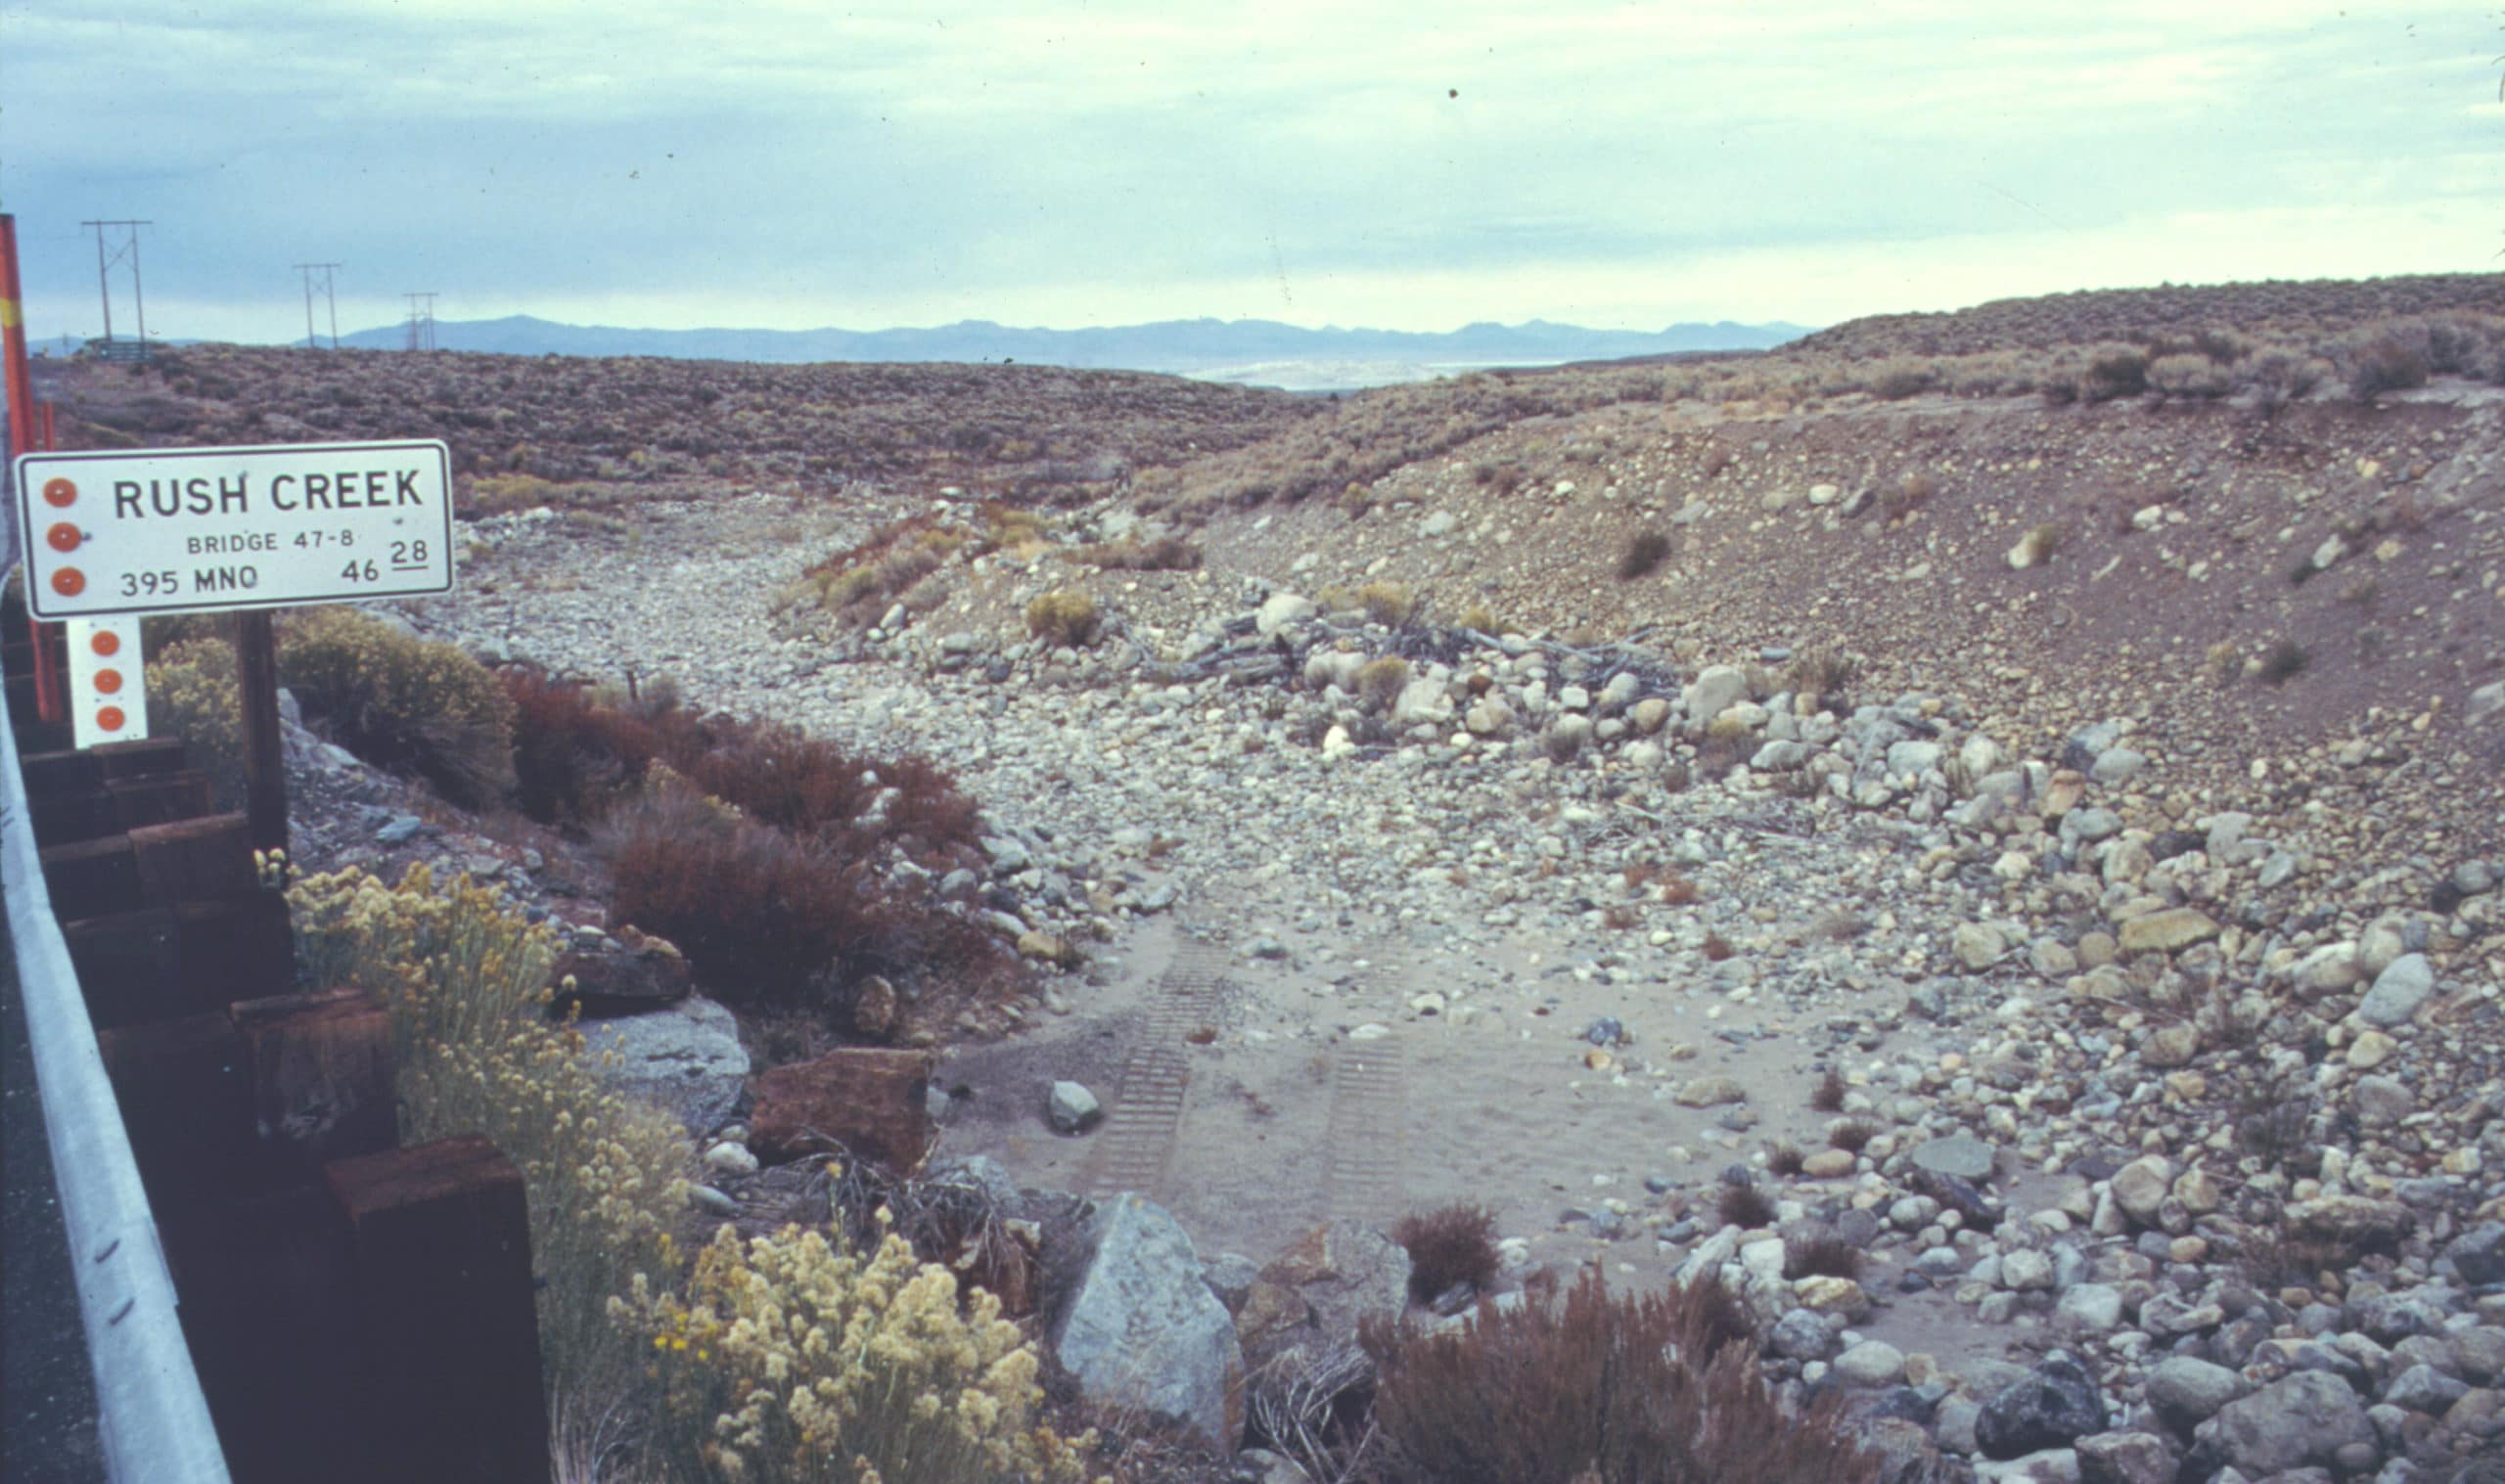 """A dry creek bed with a highway sign that reads """"Rush Creek"""" and motorized vehicle tracks in the sand of the creek below."""